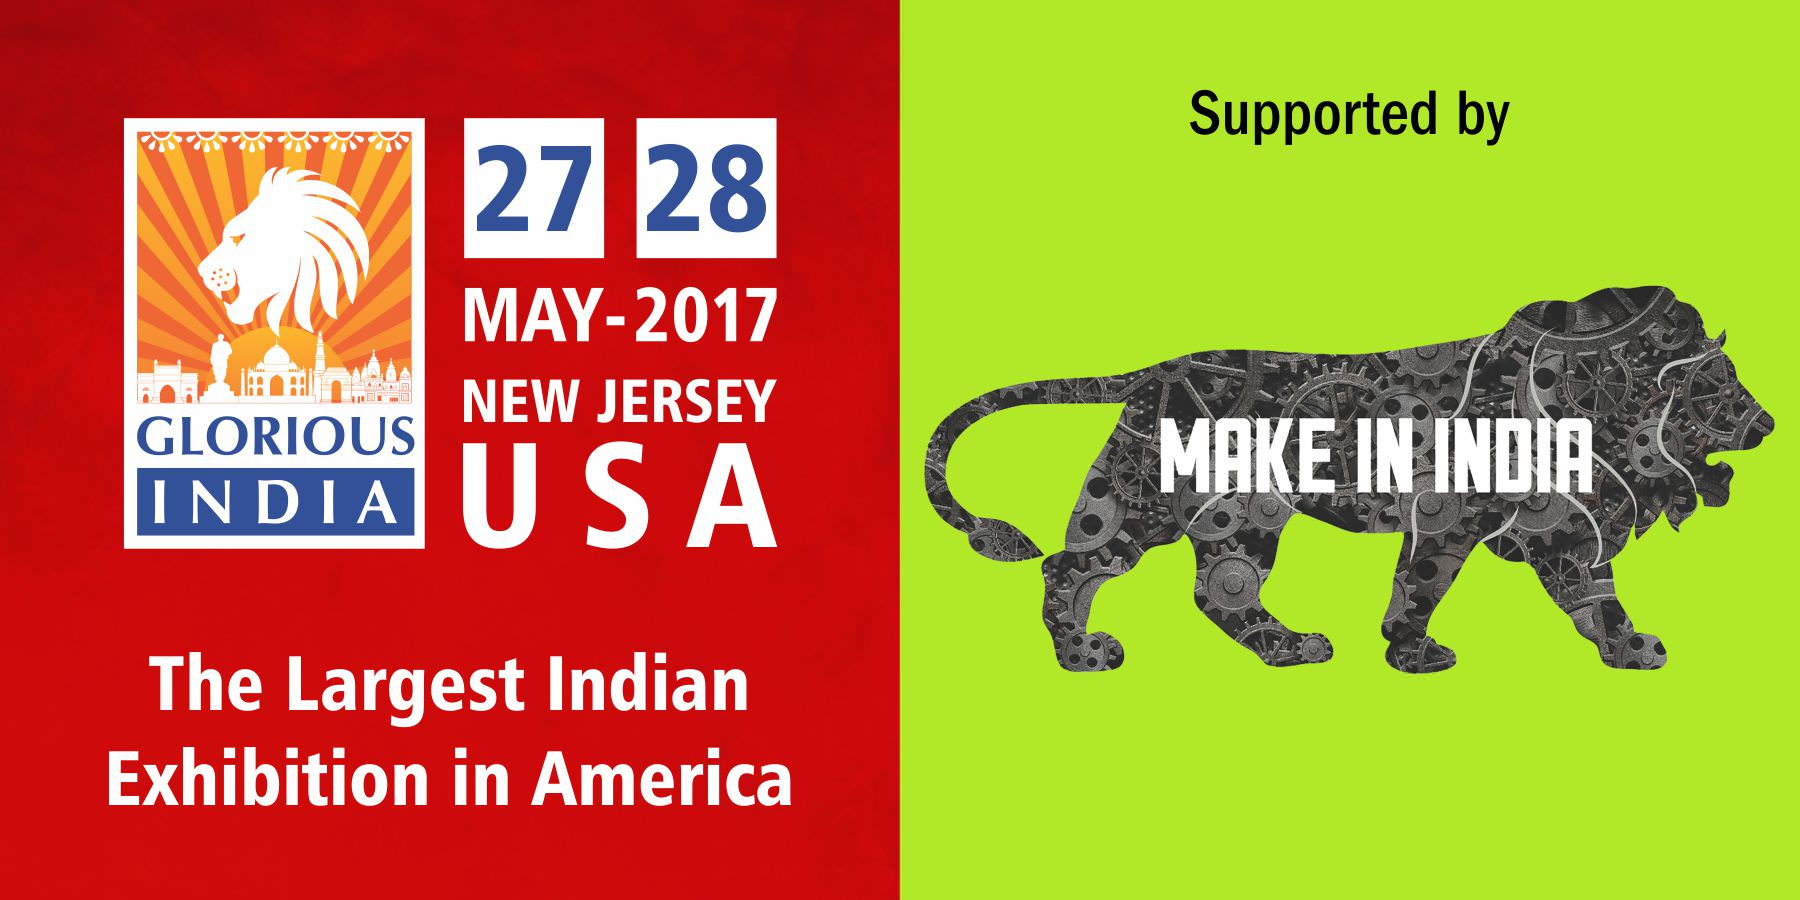 Glorious India Expo - logo support of MAKE IN INDIA